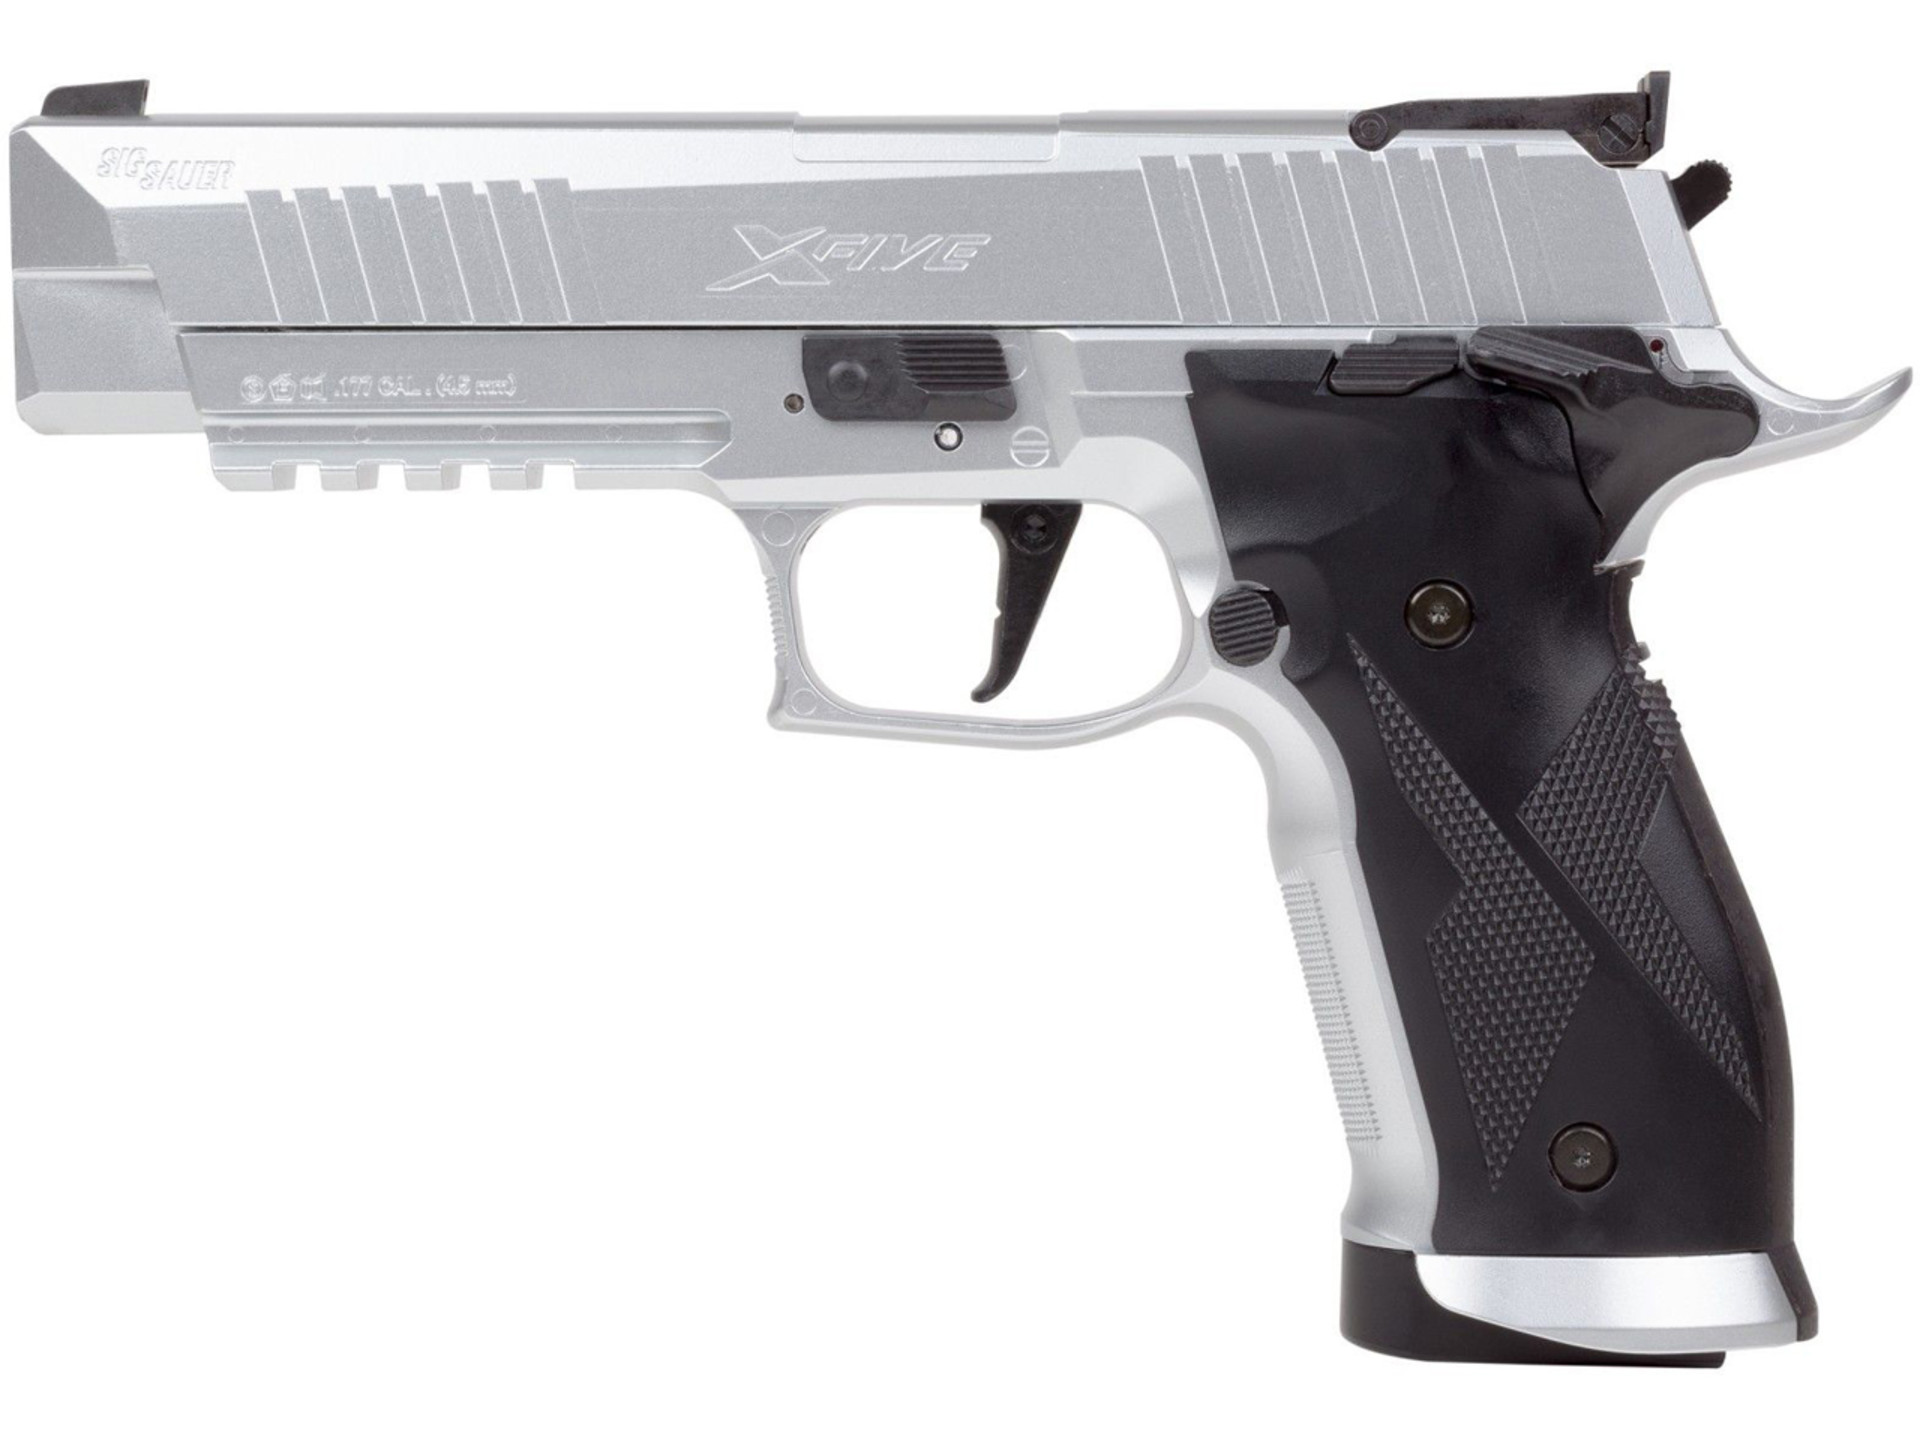 Vzduchová pistole Sig Sauer X-Five silver cal.4,5mm